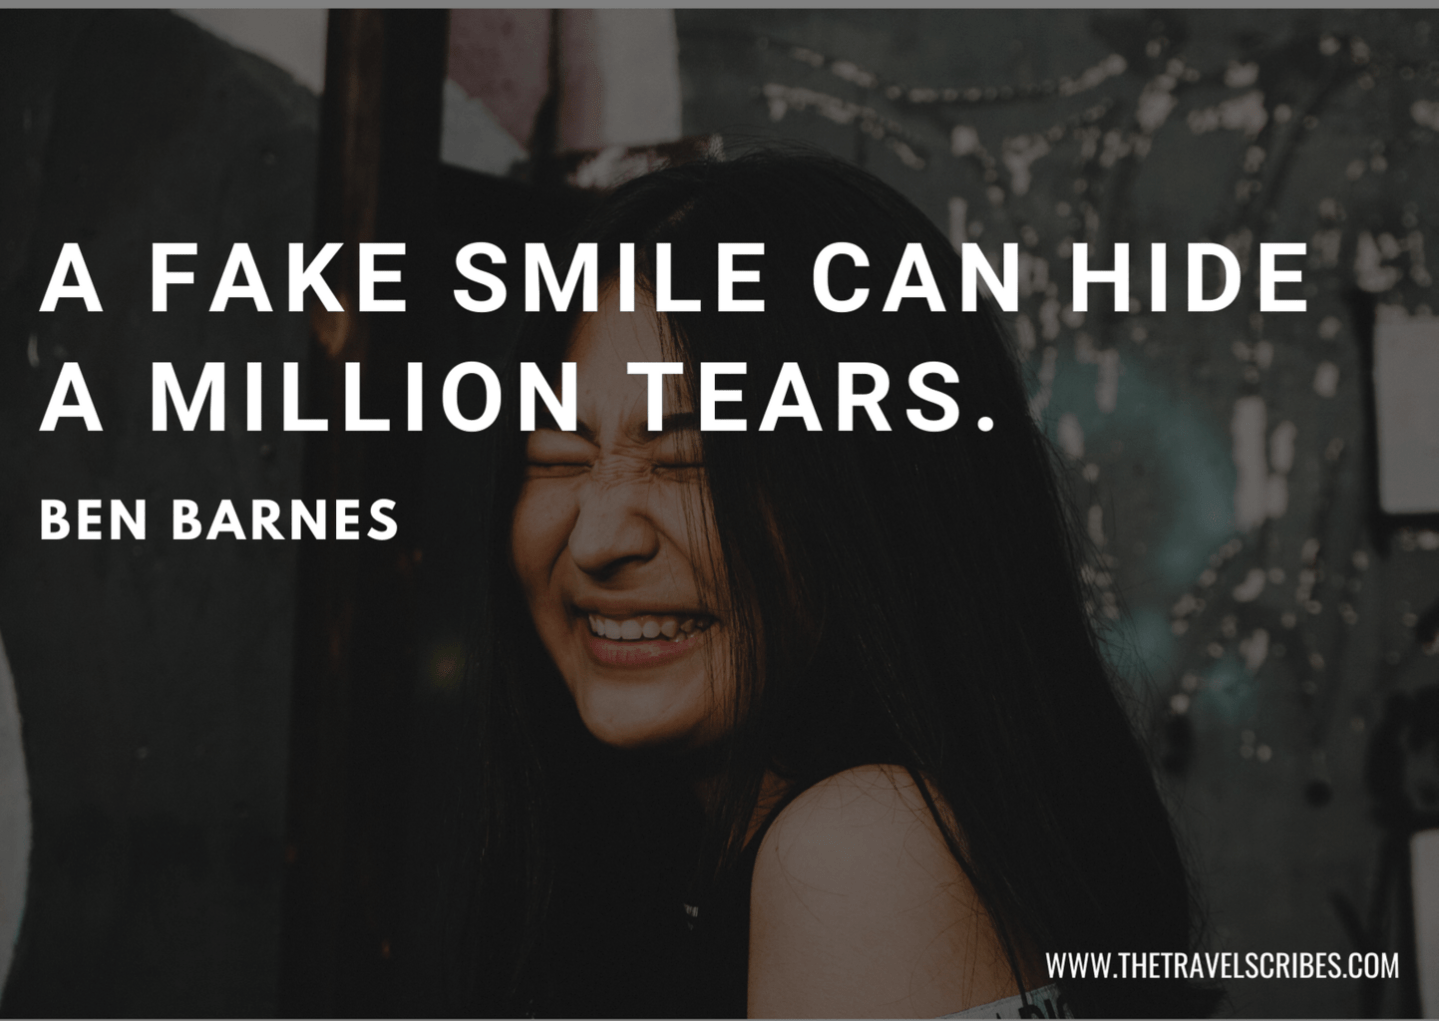 Quotes about fake smiles